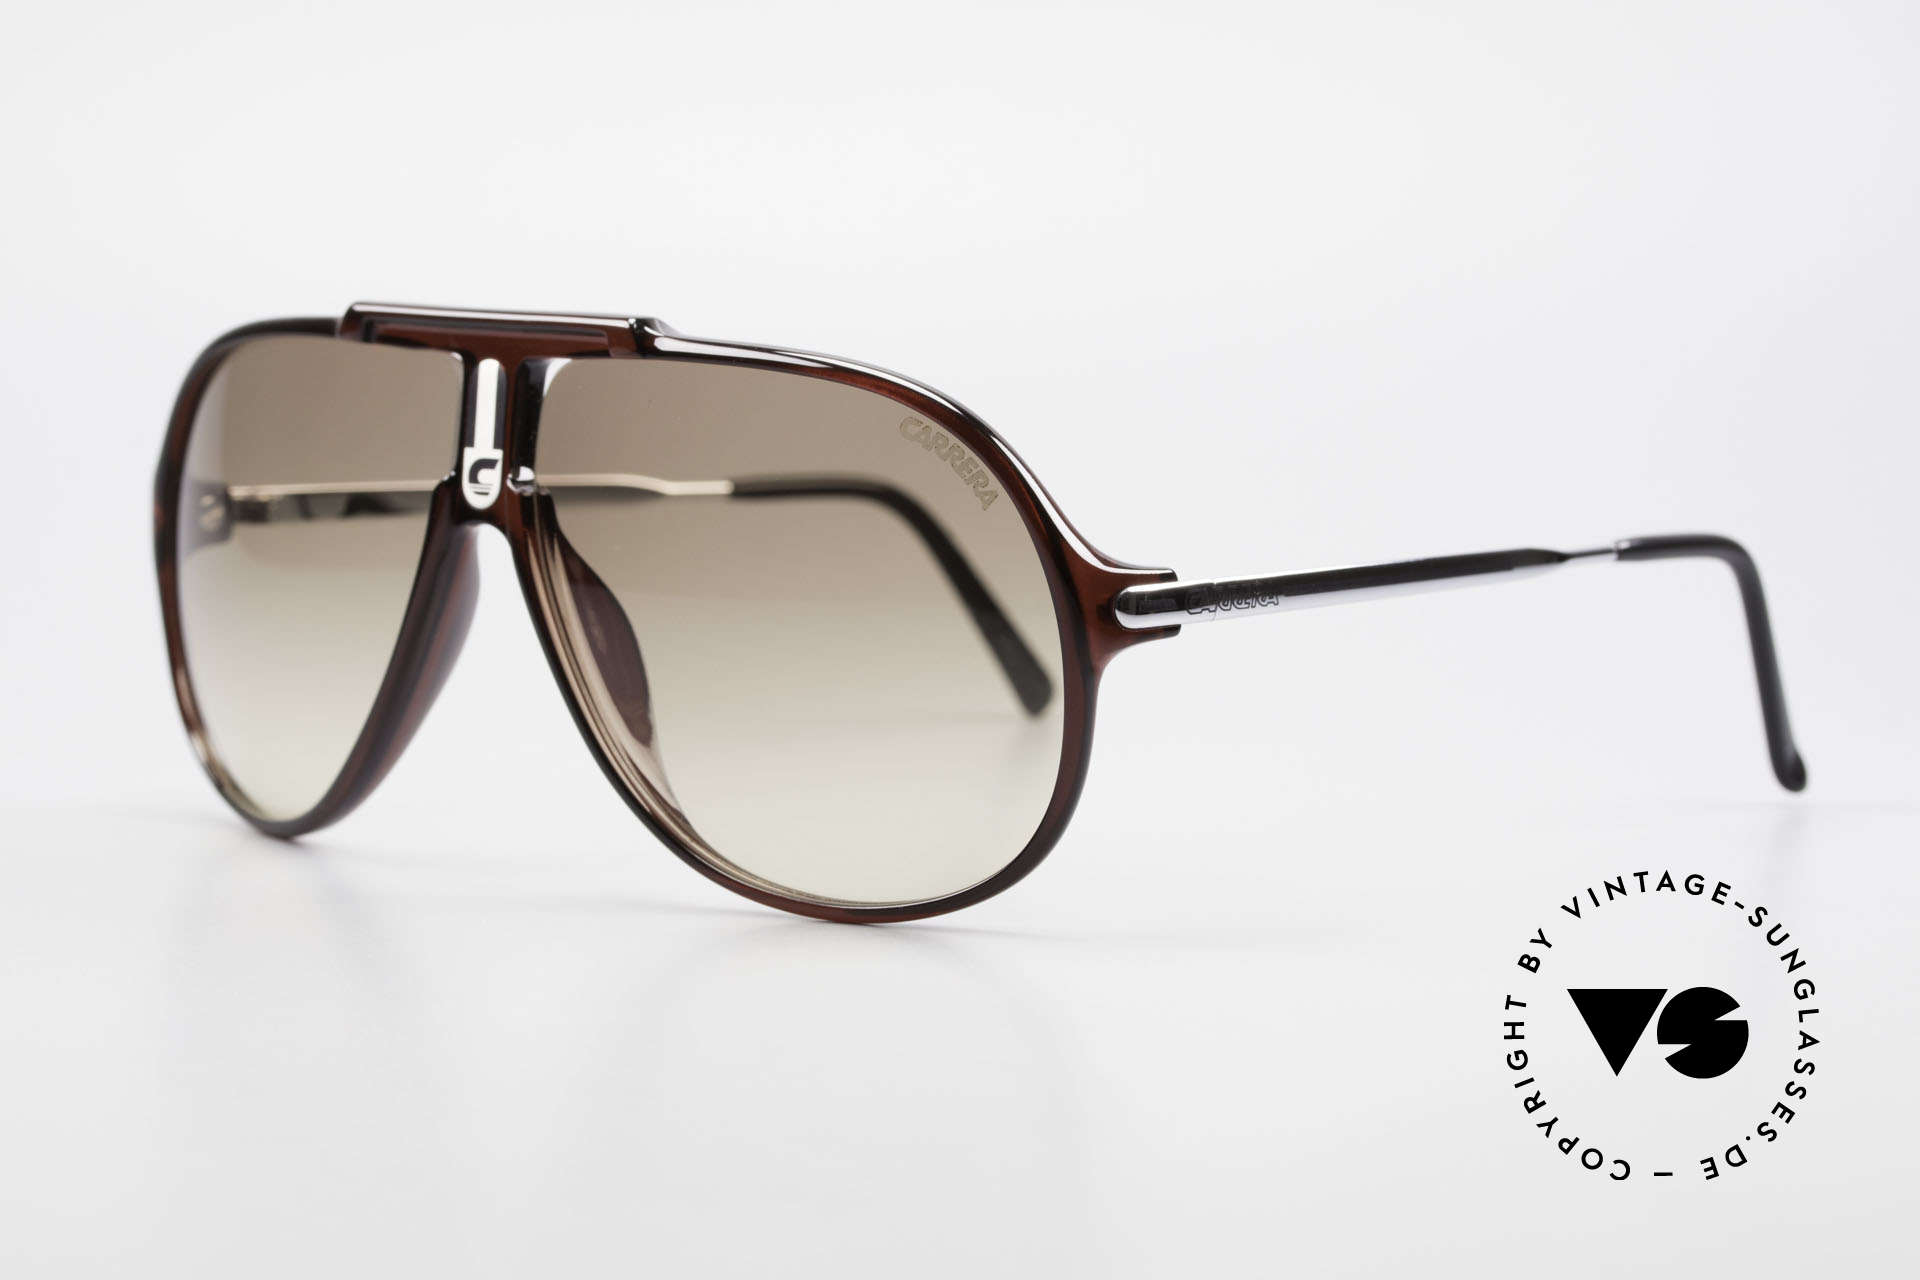 Carrera 5590 3 Sets Interchangeable Lenses, the lightweight OPTYL material does not seem to age, Made for Men